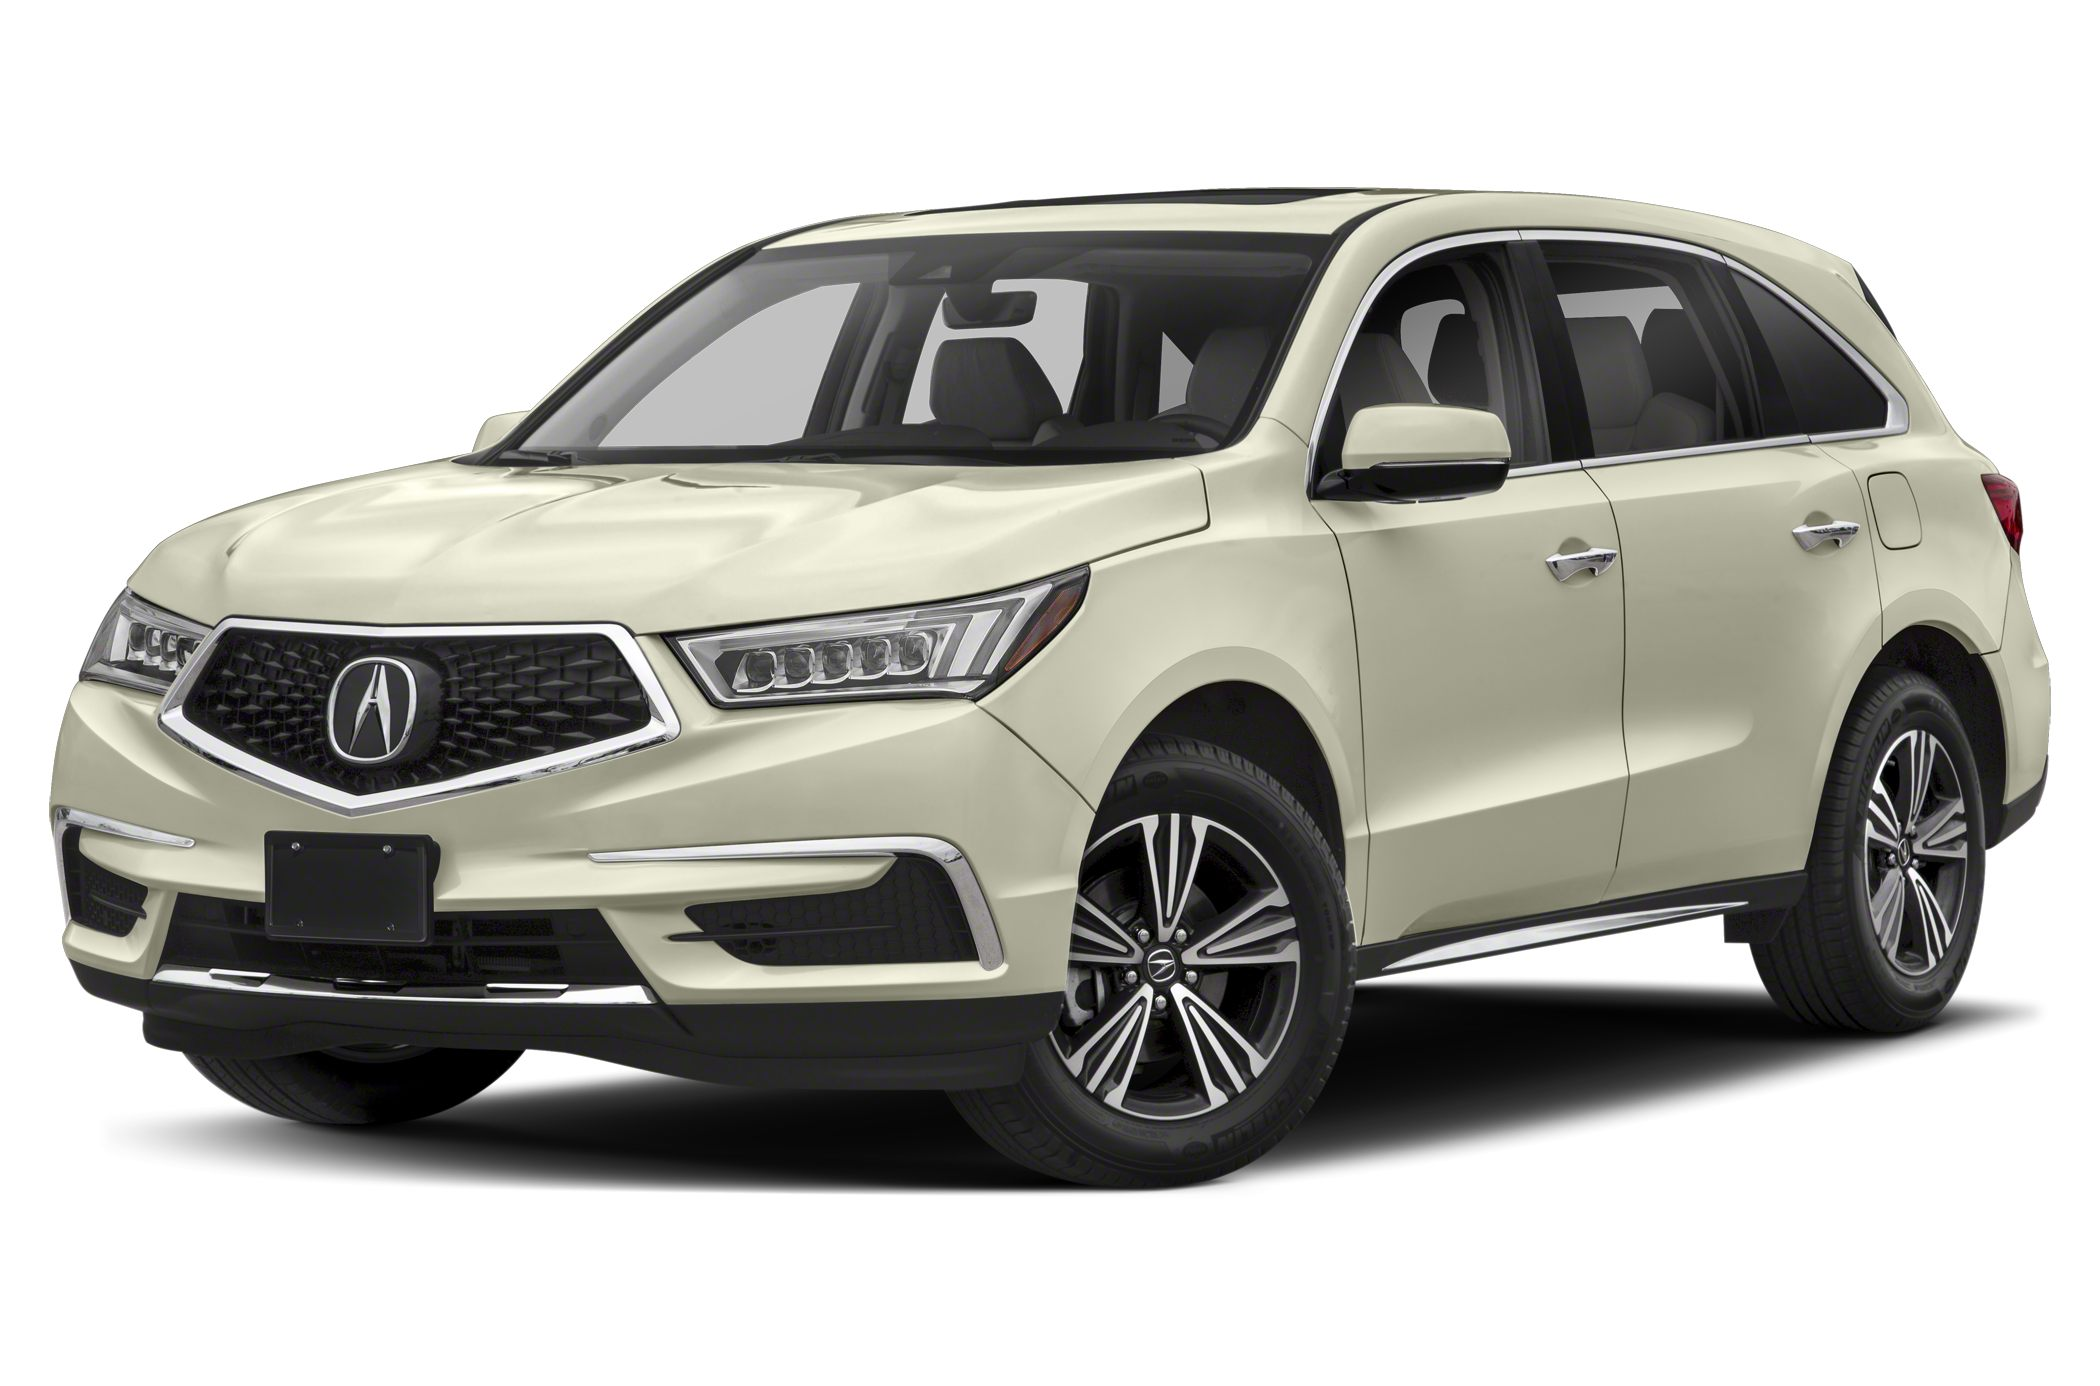 2014 Acura MDX ad campaign the most expensive in brand's ...